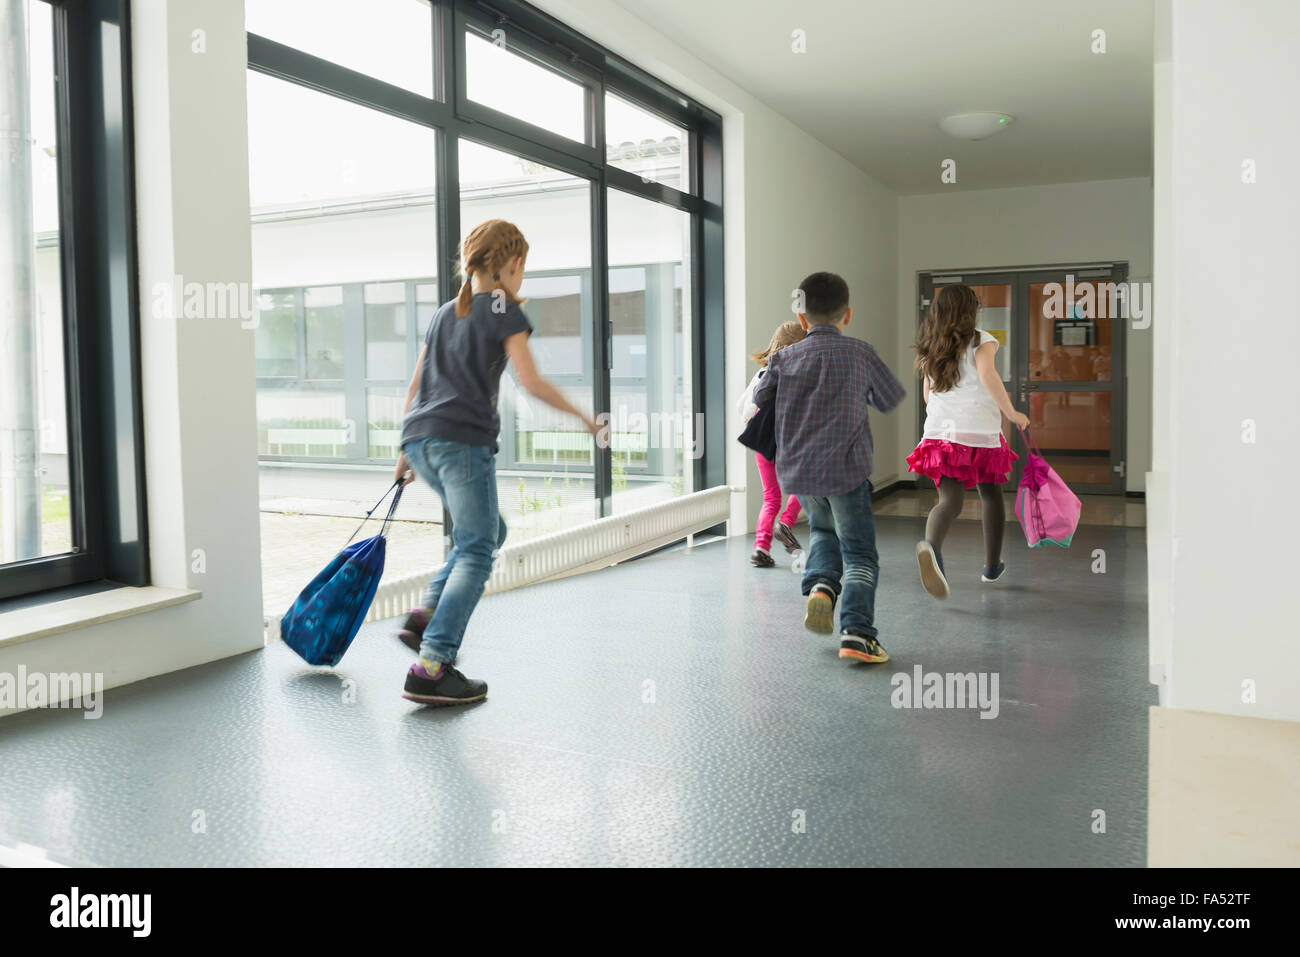 Children running with sports bags in corridor of sports hall, Munich, Bavaria, Germany - Stock Image